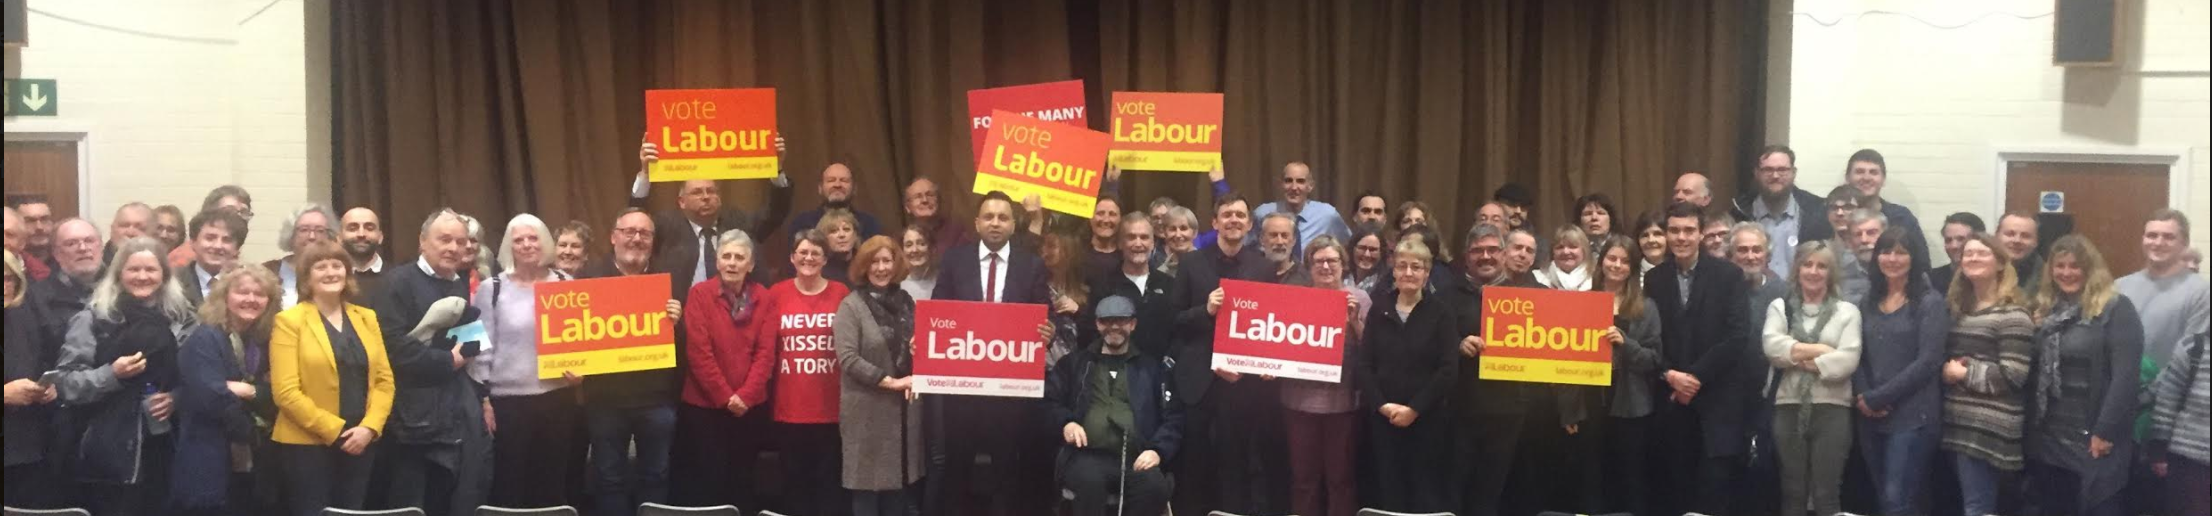 Macclesfield Constituency Labour Party United